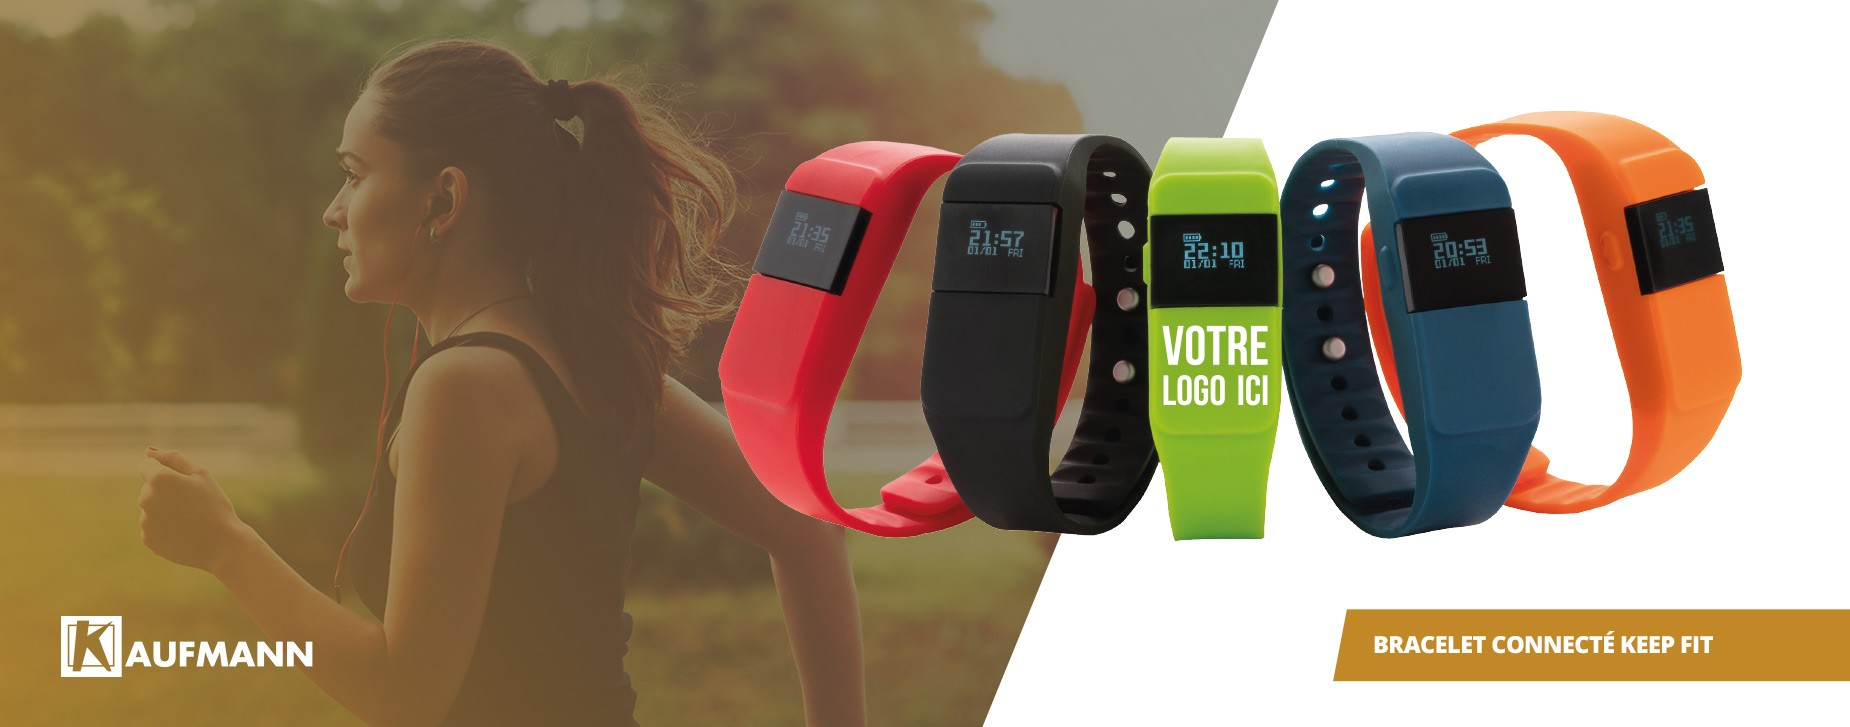 BRACELET CONNECTÉ KEEP FIT